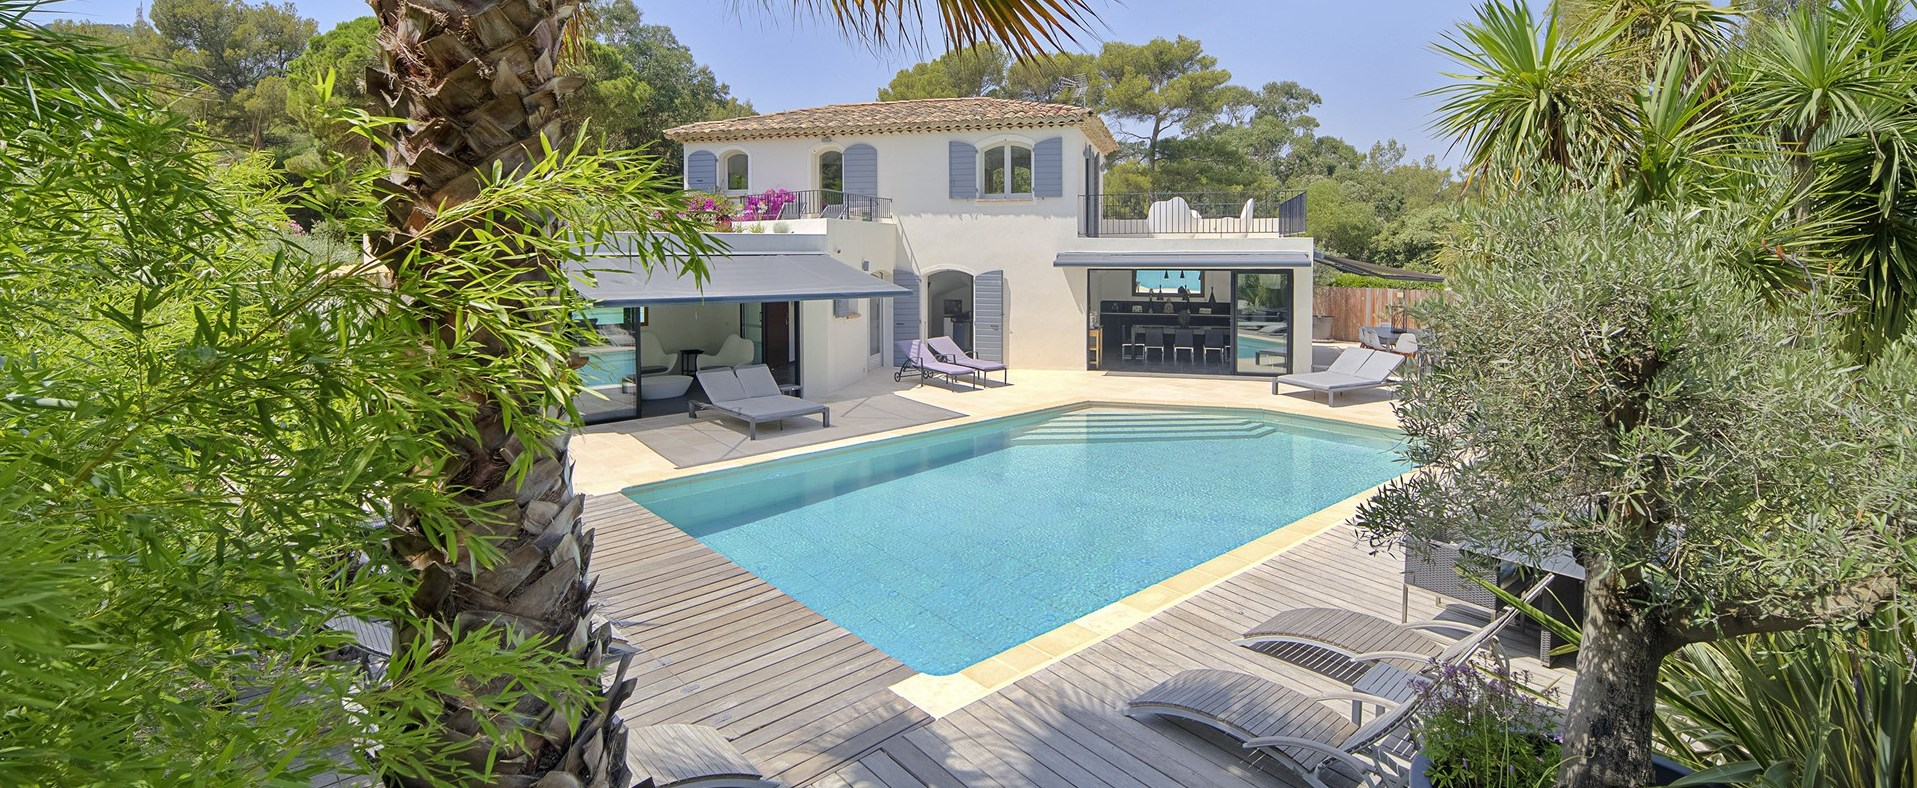 5-bedroom-villa-lara-south-of-france